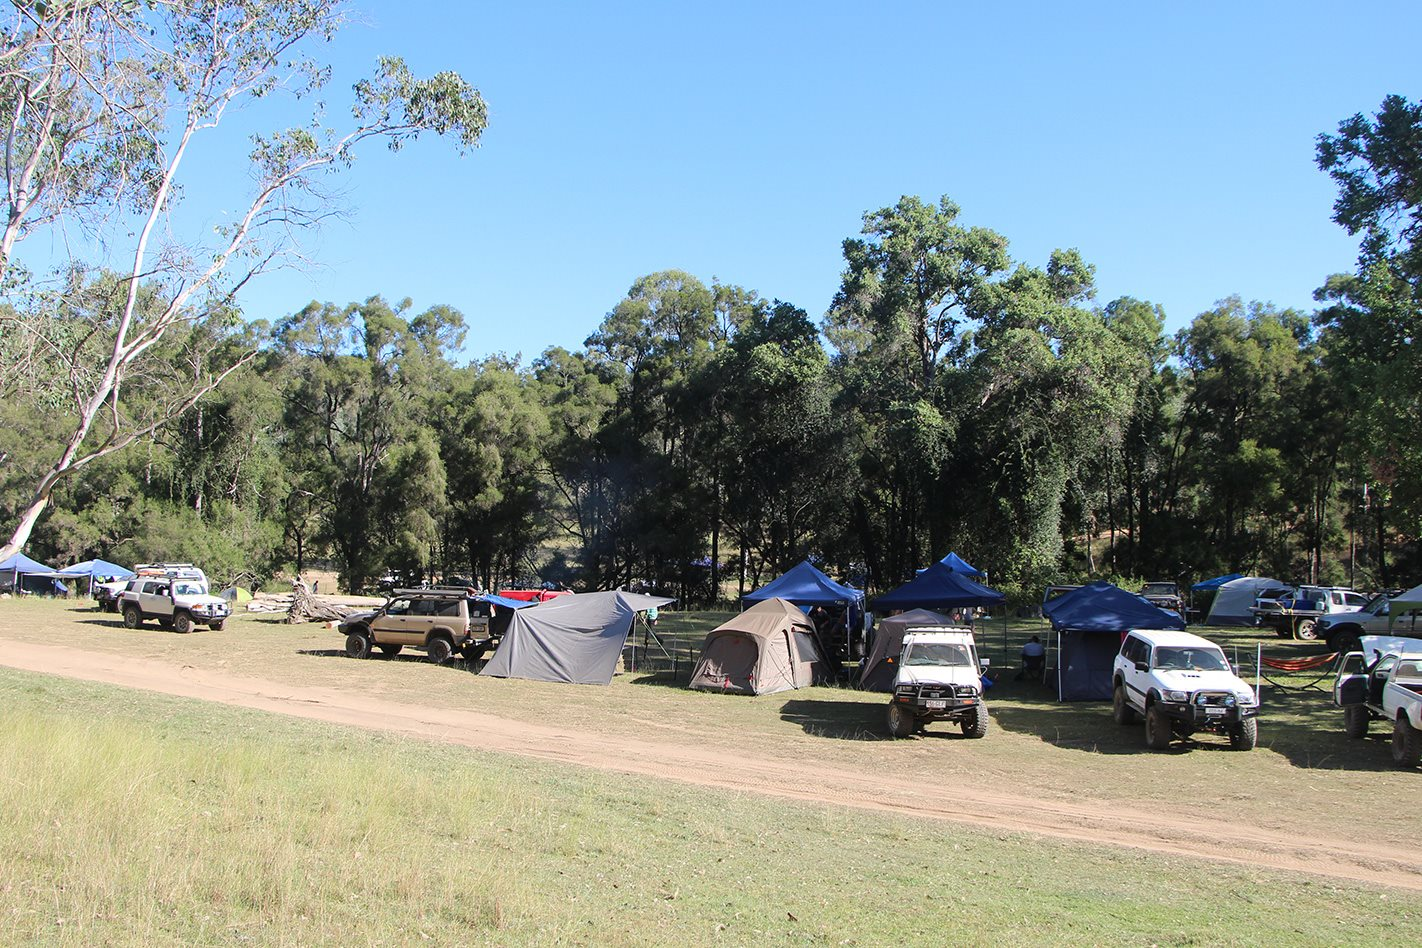 Land Cruiser Mountain Park QLD campsite